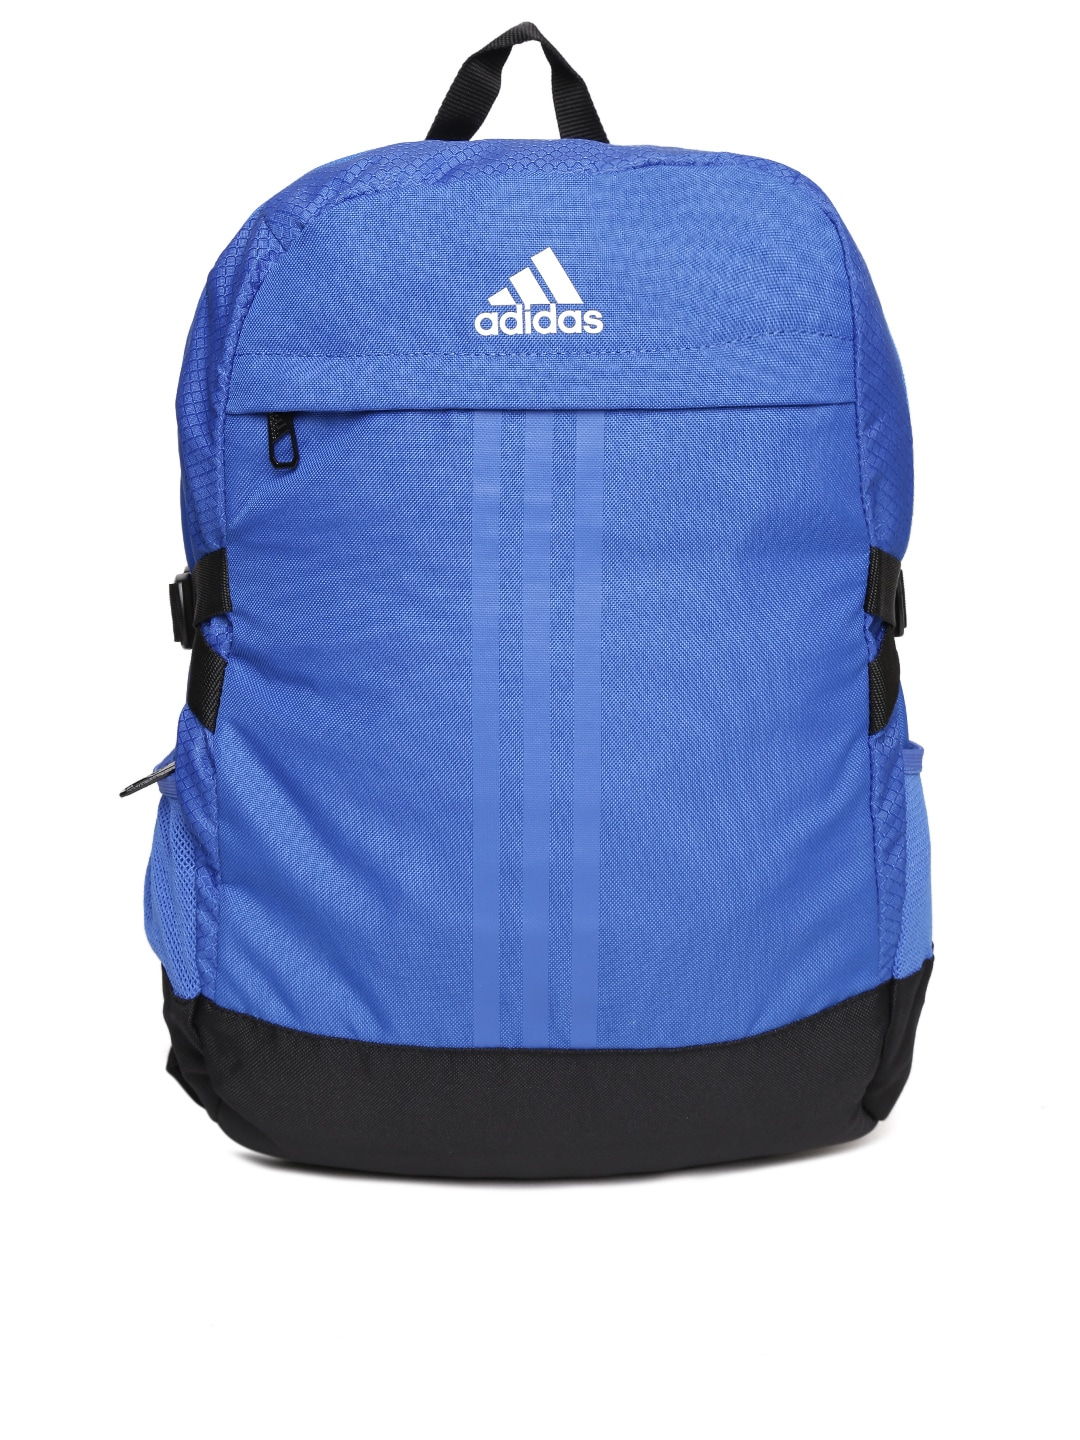 6f1b1fceaf80 Buy Nike Unisex Blue STADIUM Chelsea FC BKPK Backpack - Backpacks for Unisex  2239419